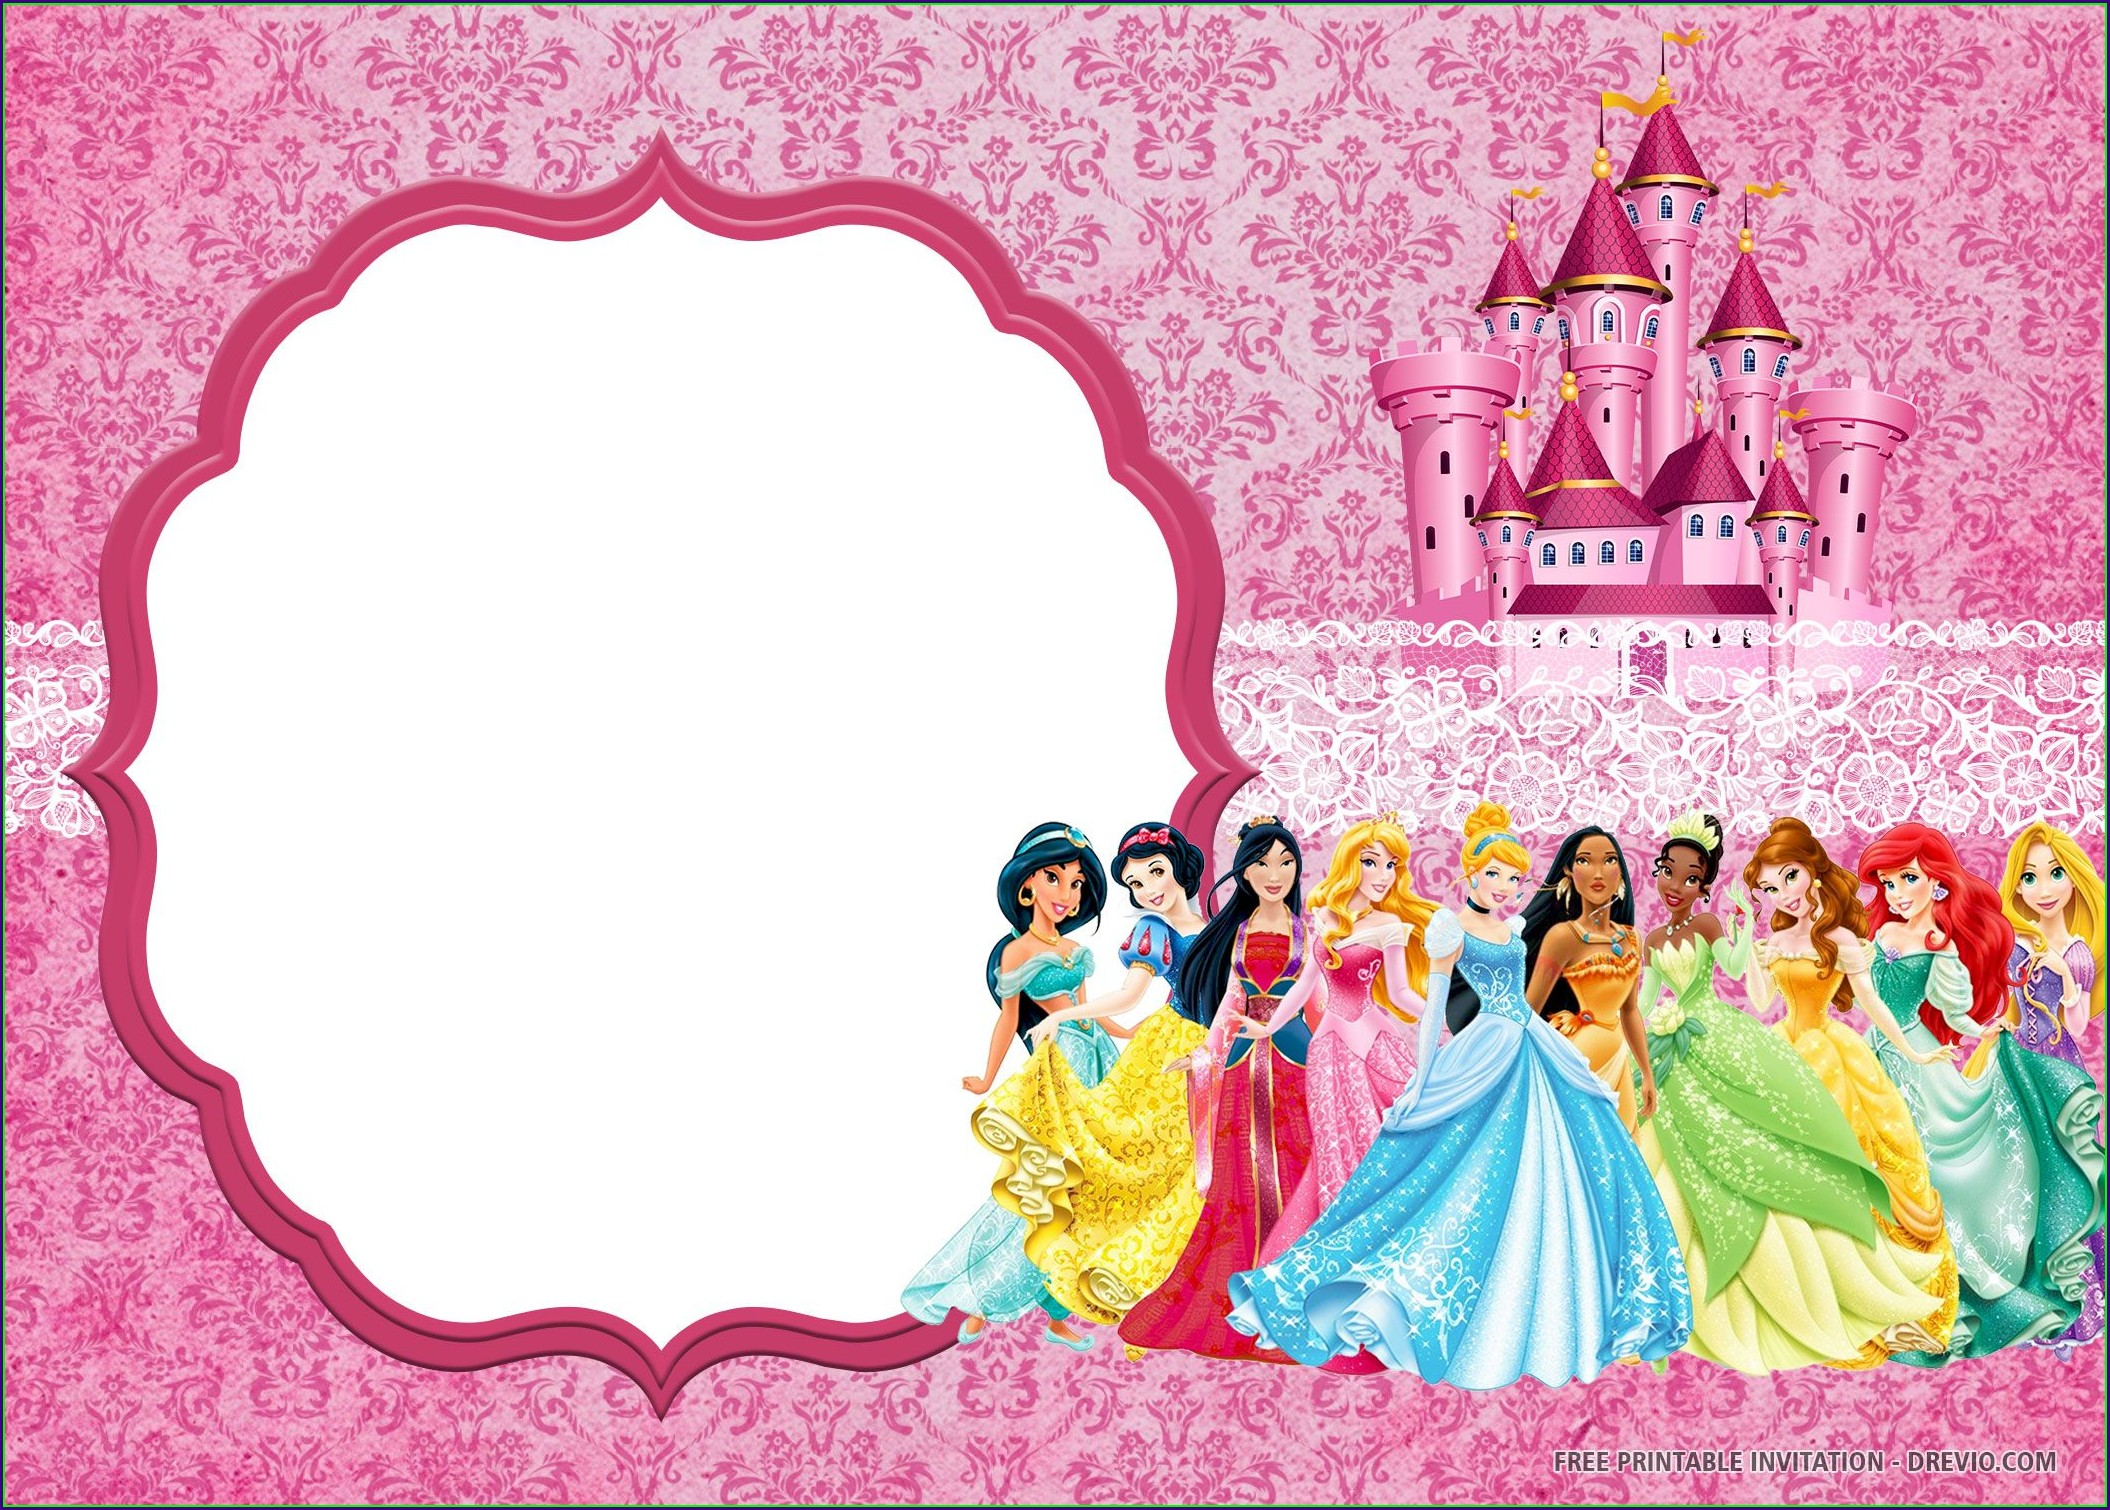 Free Printable Disney Princess Invitations